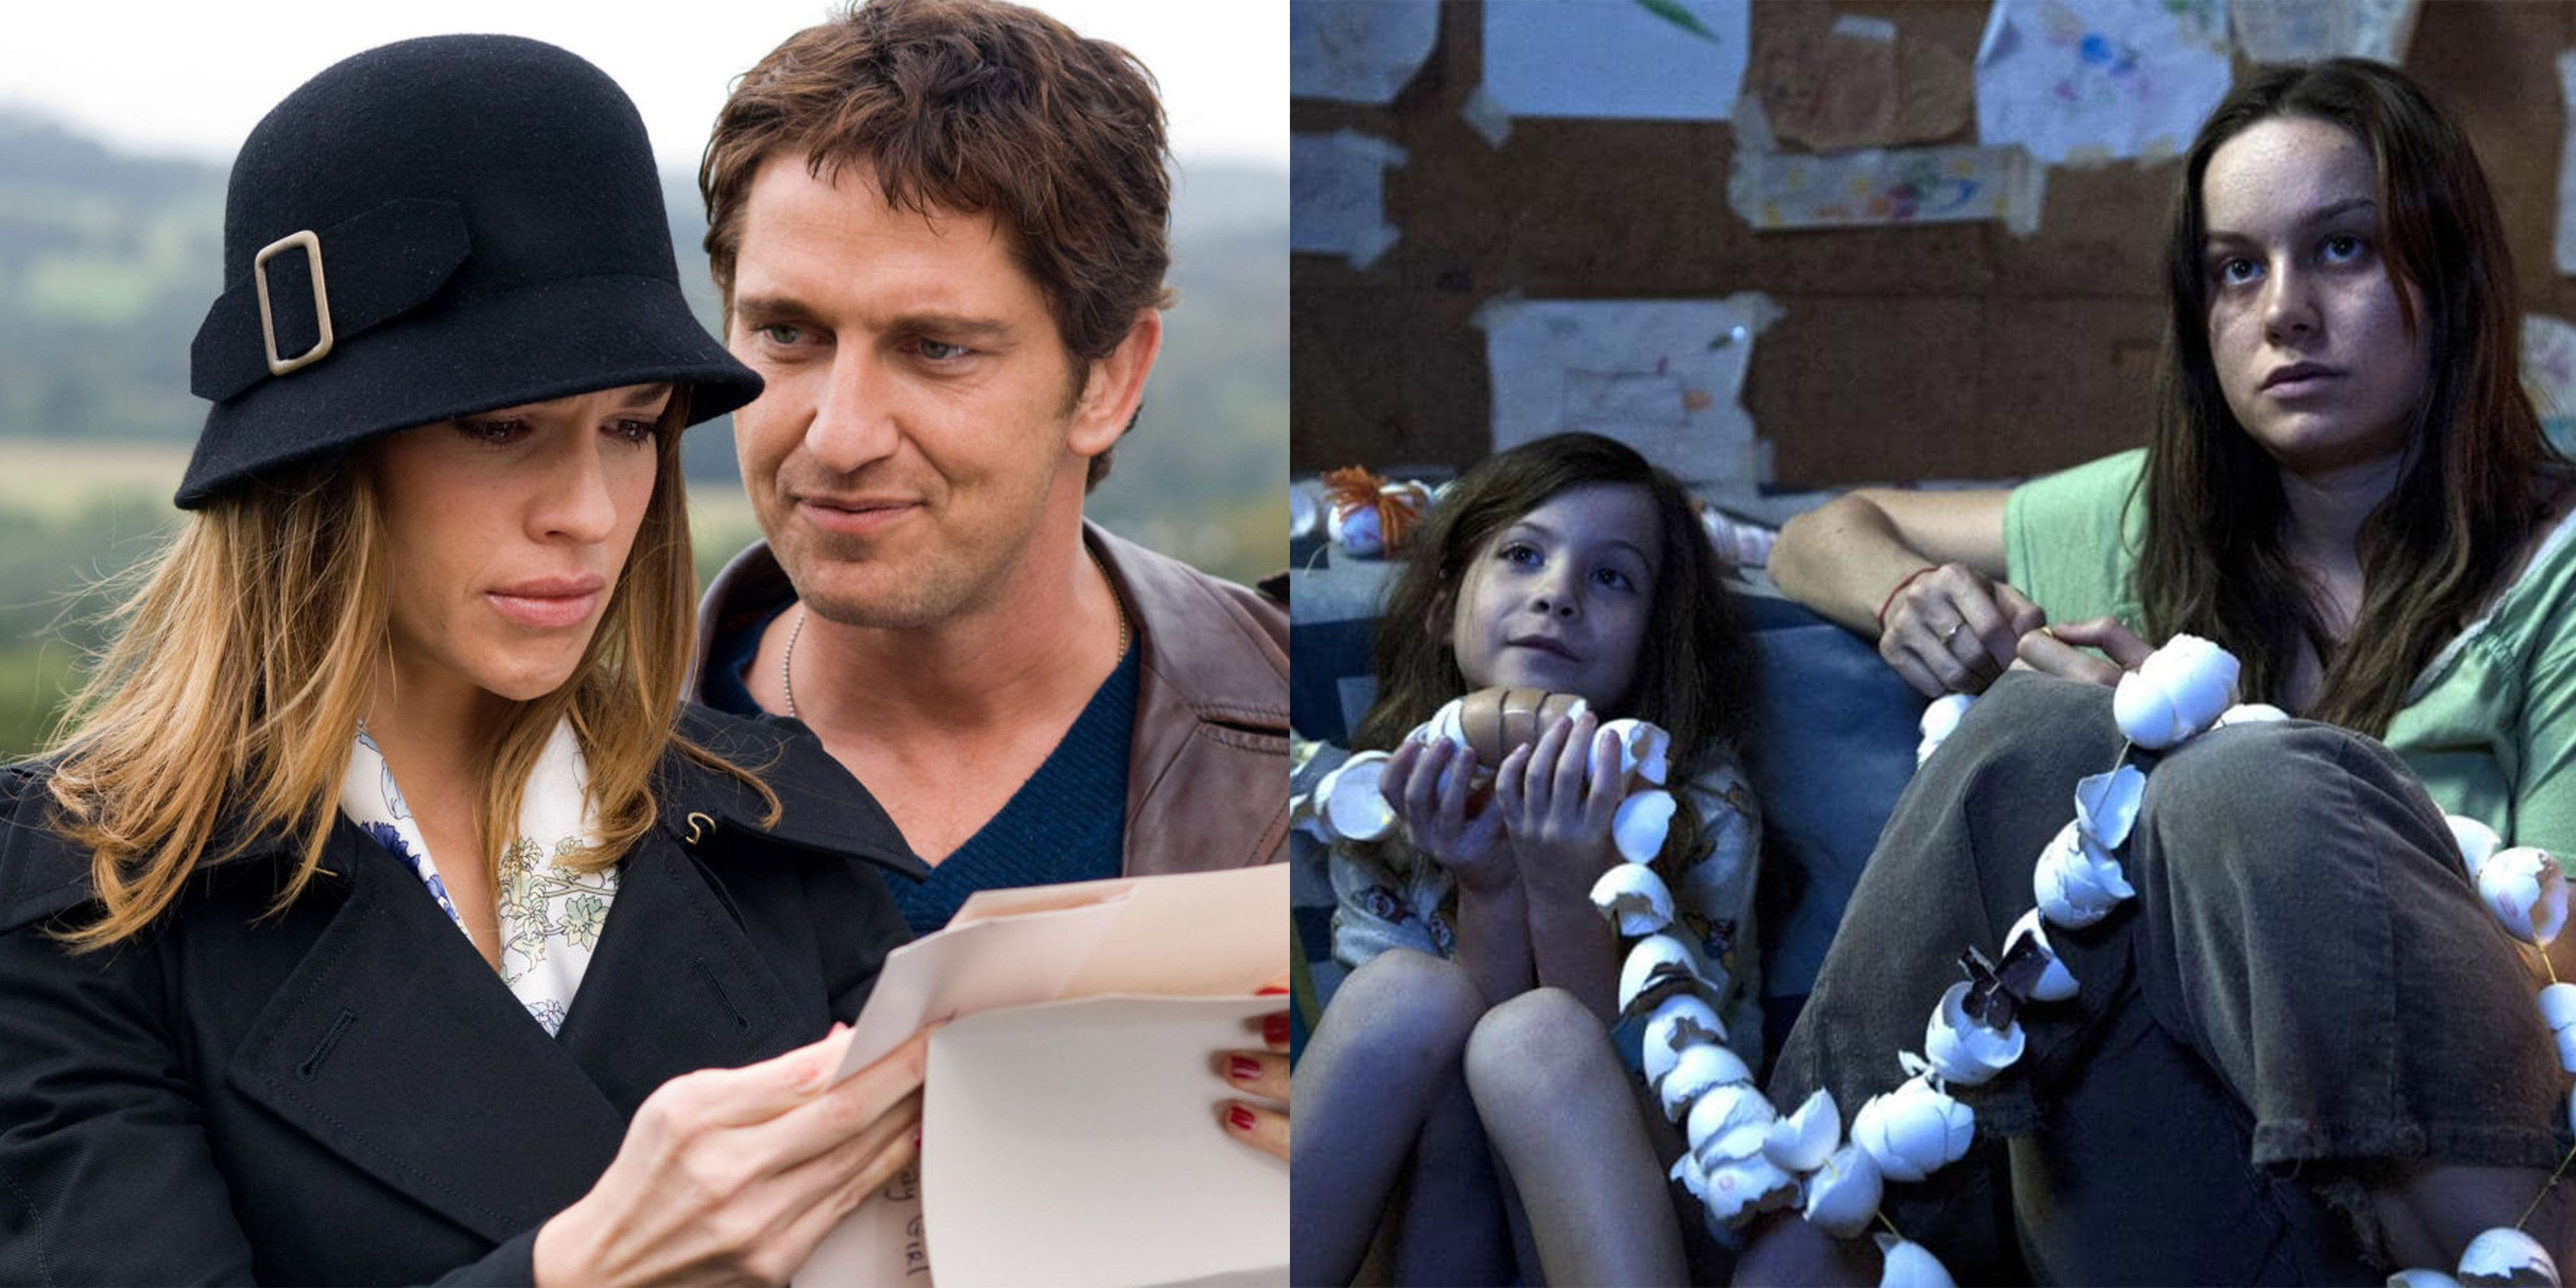 15 Sad Movies On Netflix In 2021 Streaming Films That Make You Cry